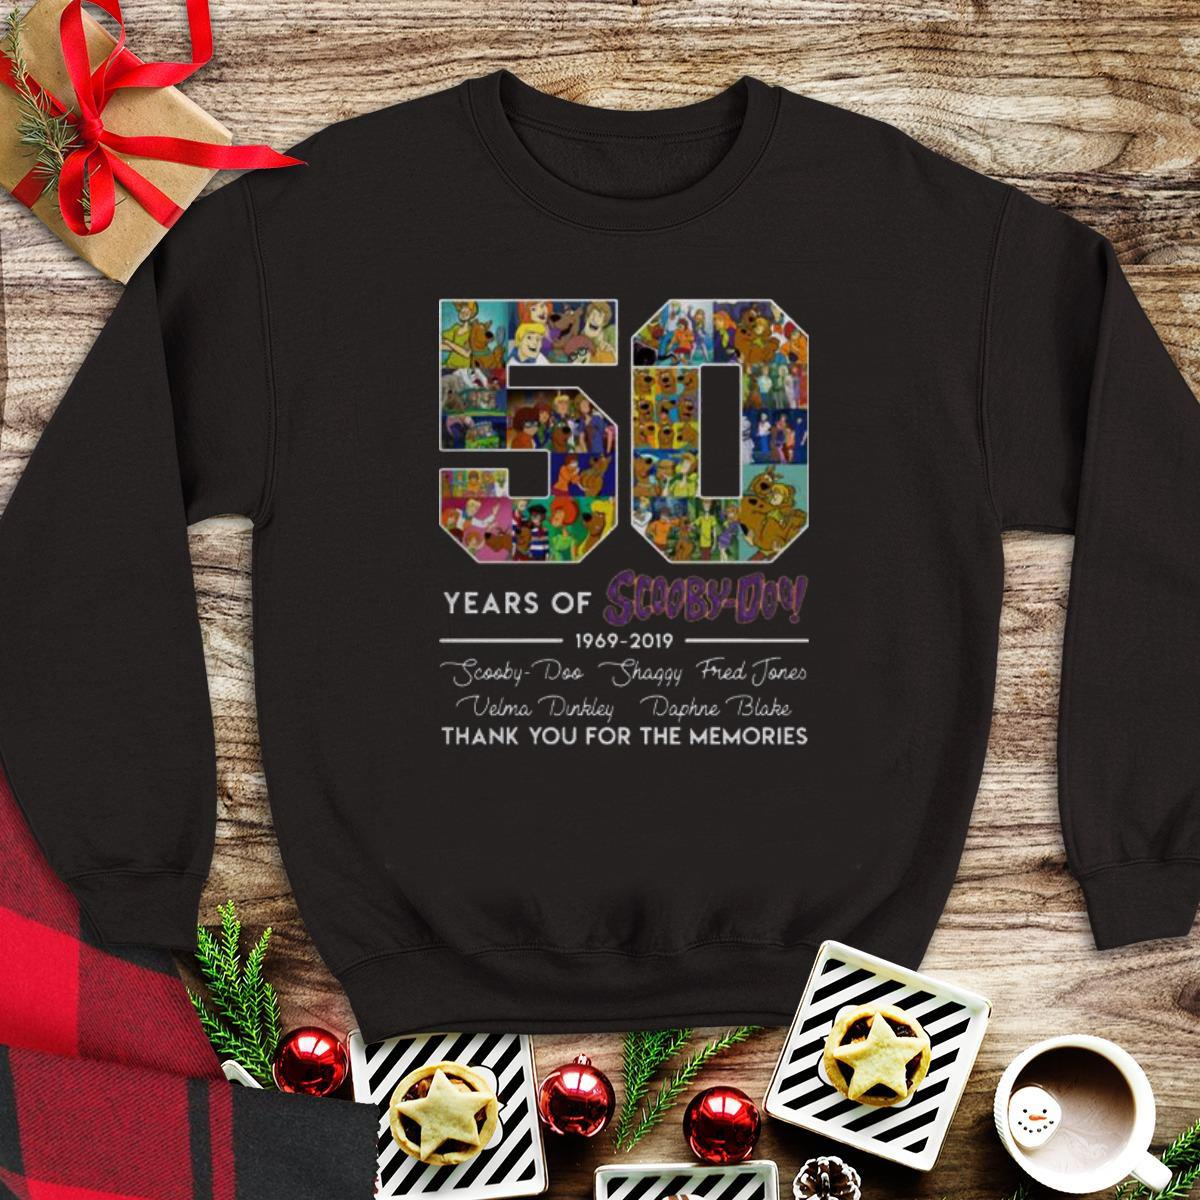 50 Years of 1969 2019 Scooby Doo Signature Thank You For Memories sweater 1 - 50 Years of 1969-2019 Scooby Doo Signature Thank You For Memories sweater